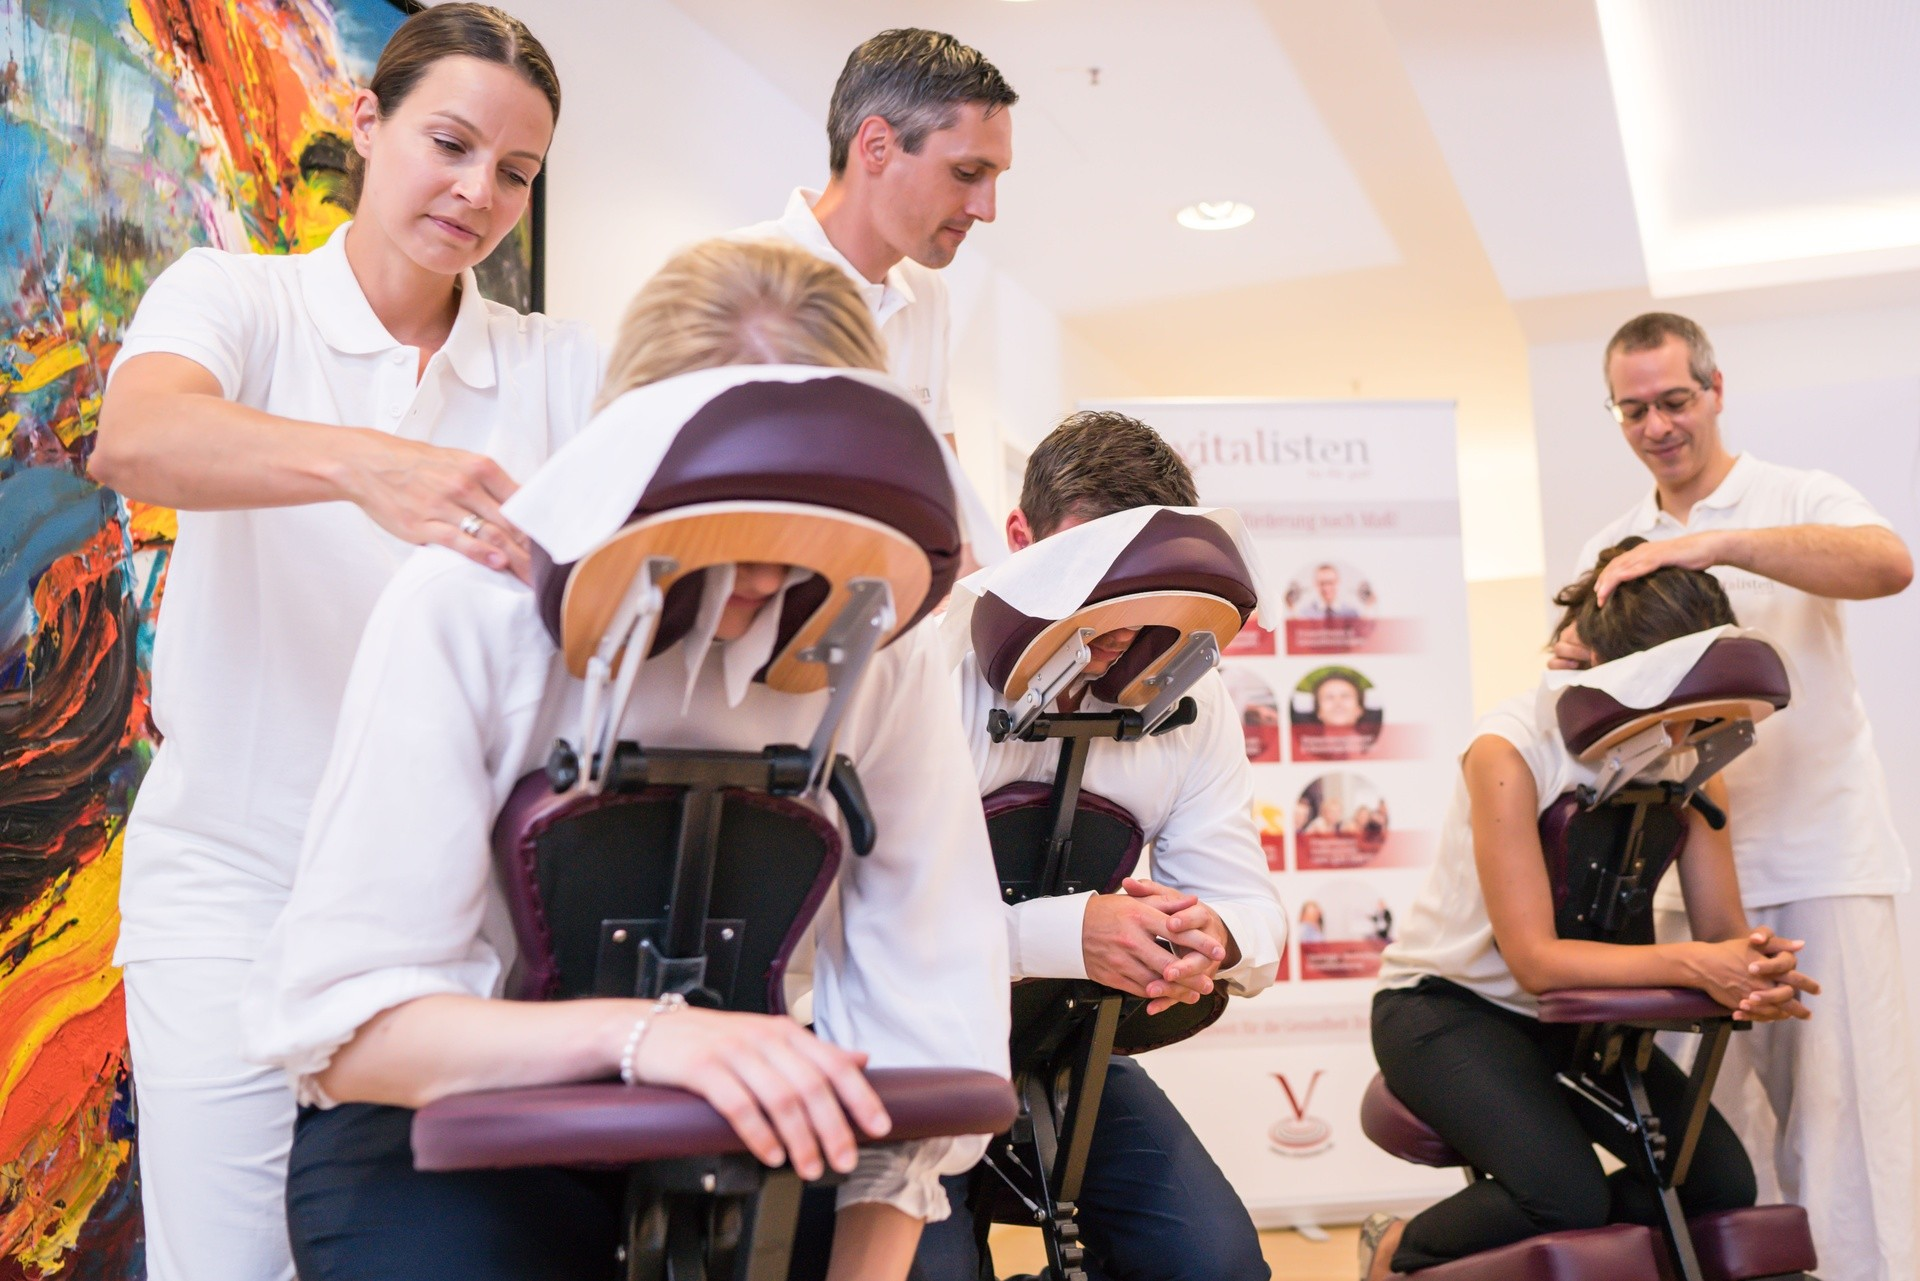 Vitalisten Event-Massage